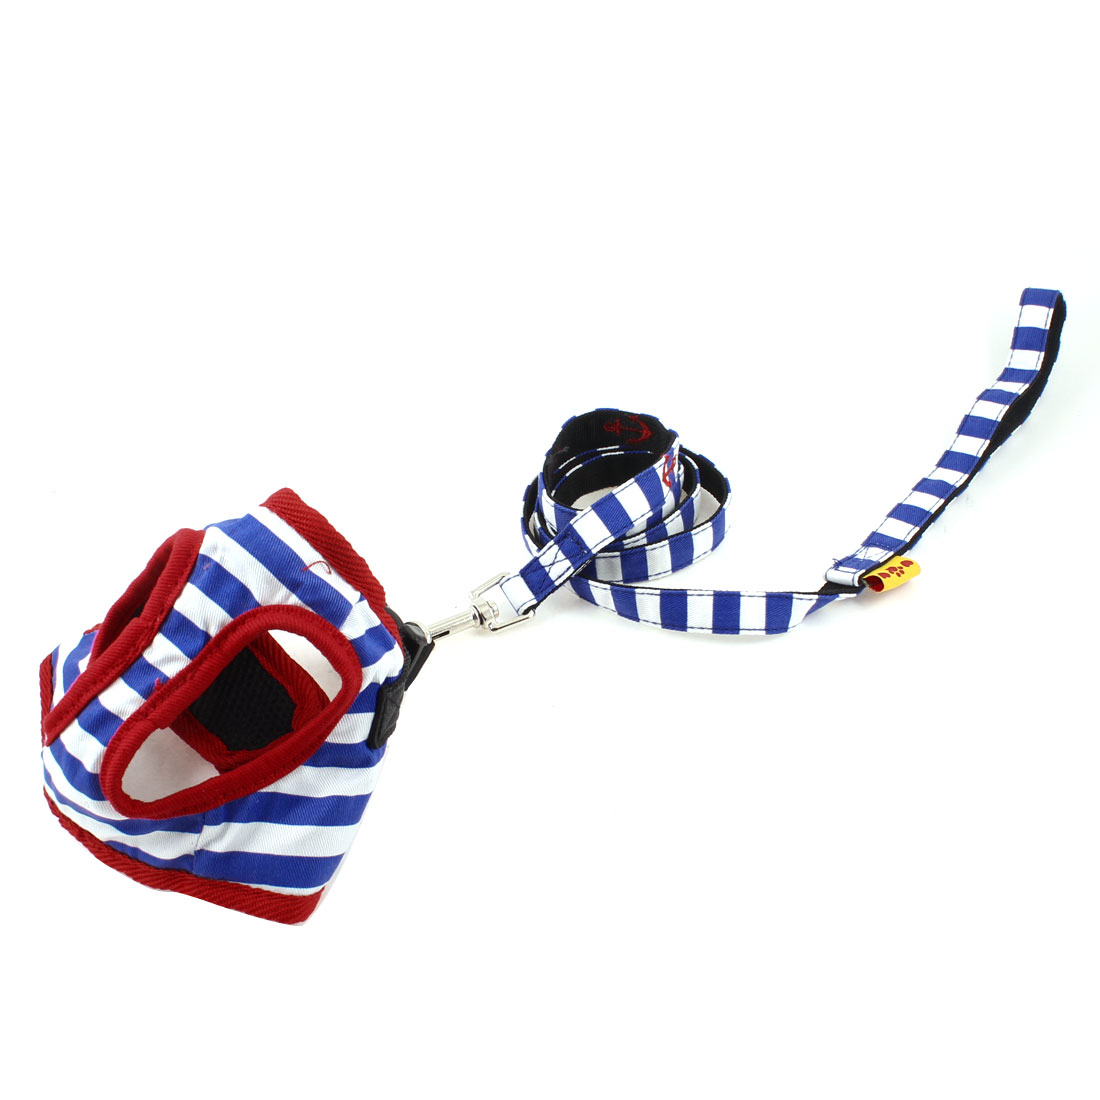 Pet Dog Blue White Striped Adjustable Harness Size 1 w Leash